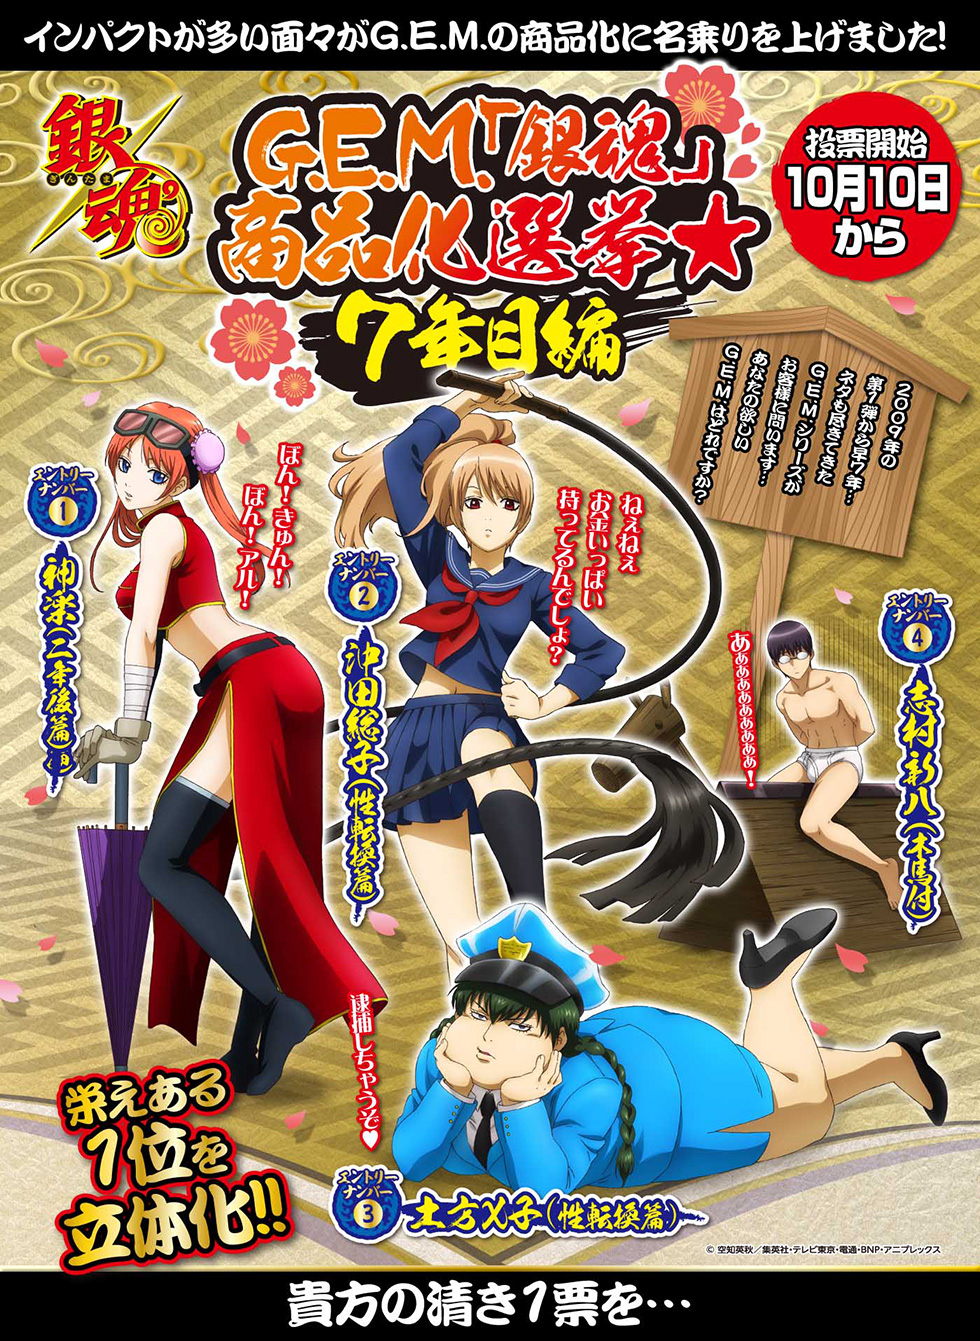 MegaHouse is asking fans to vote for which Gintama character will be getting a figure next